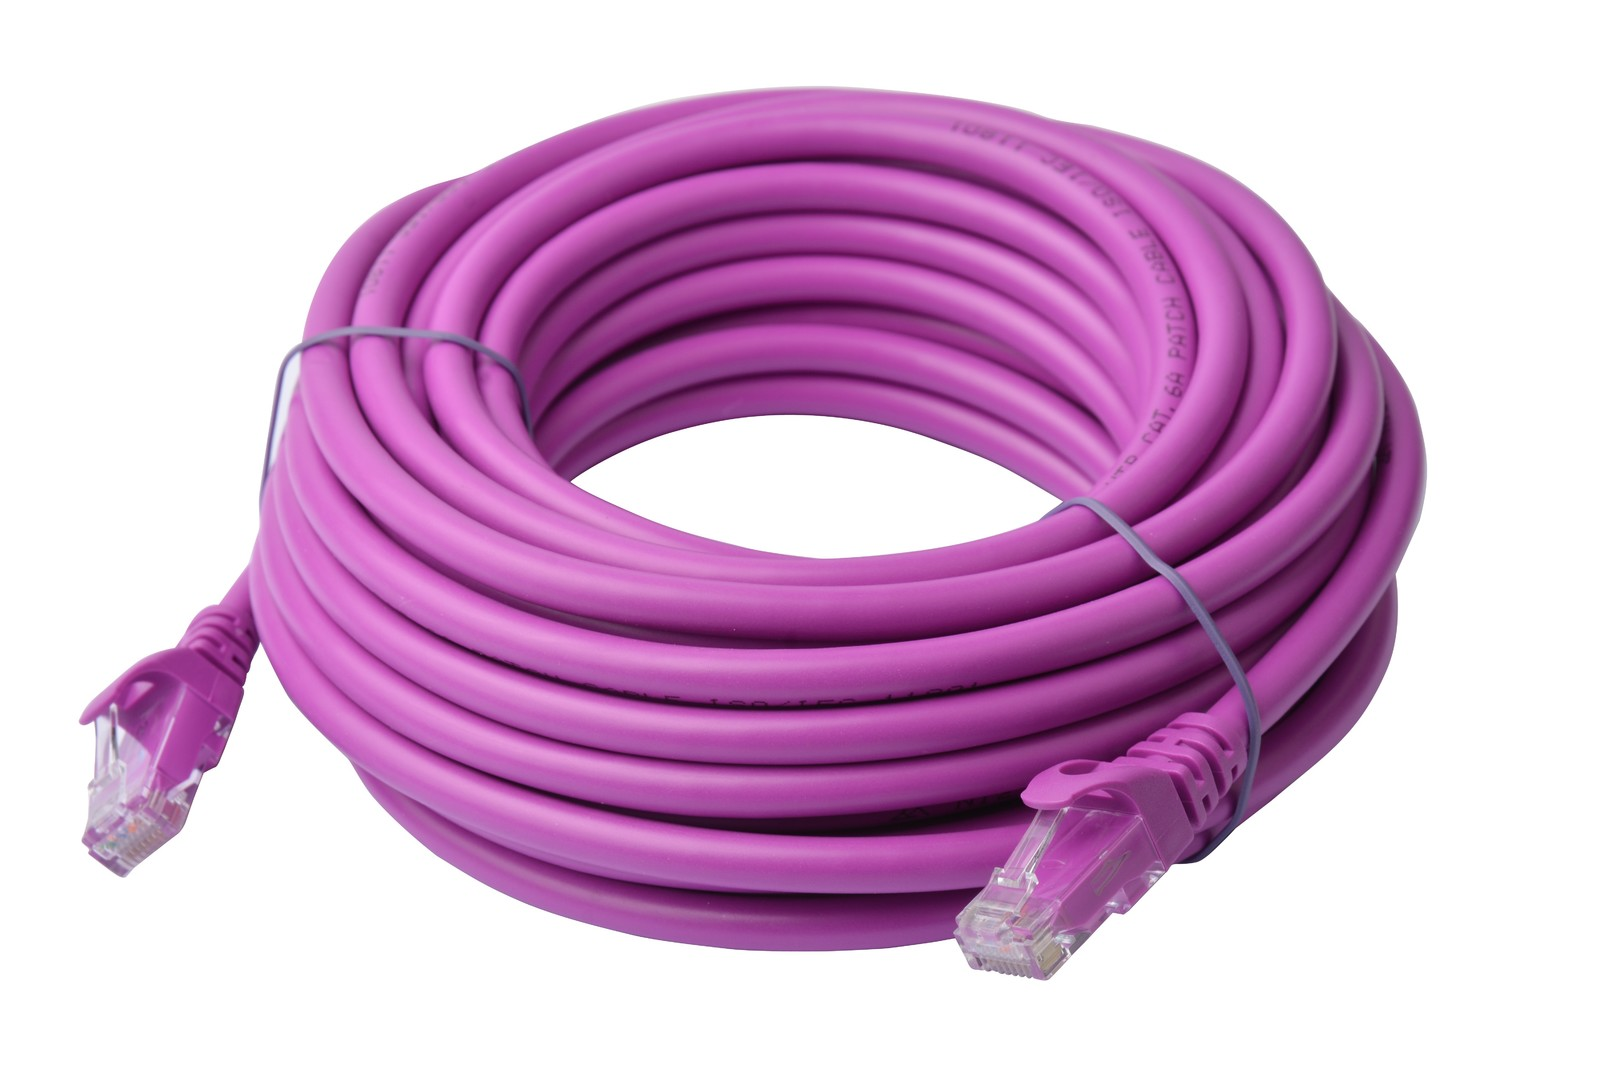 8ware: Cat 6a UTP Ethernet Cable Snagless - 10m (Purple) image